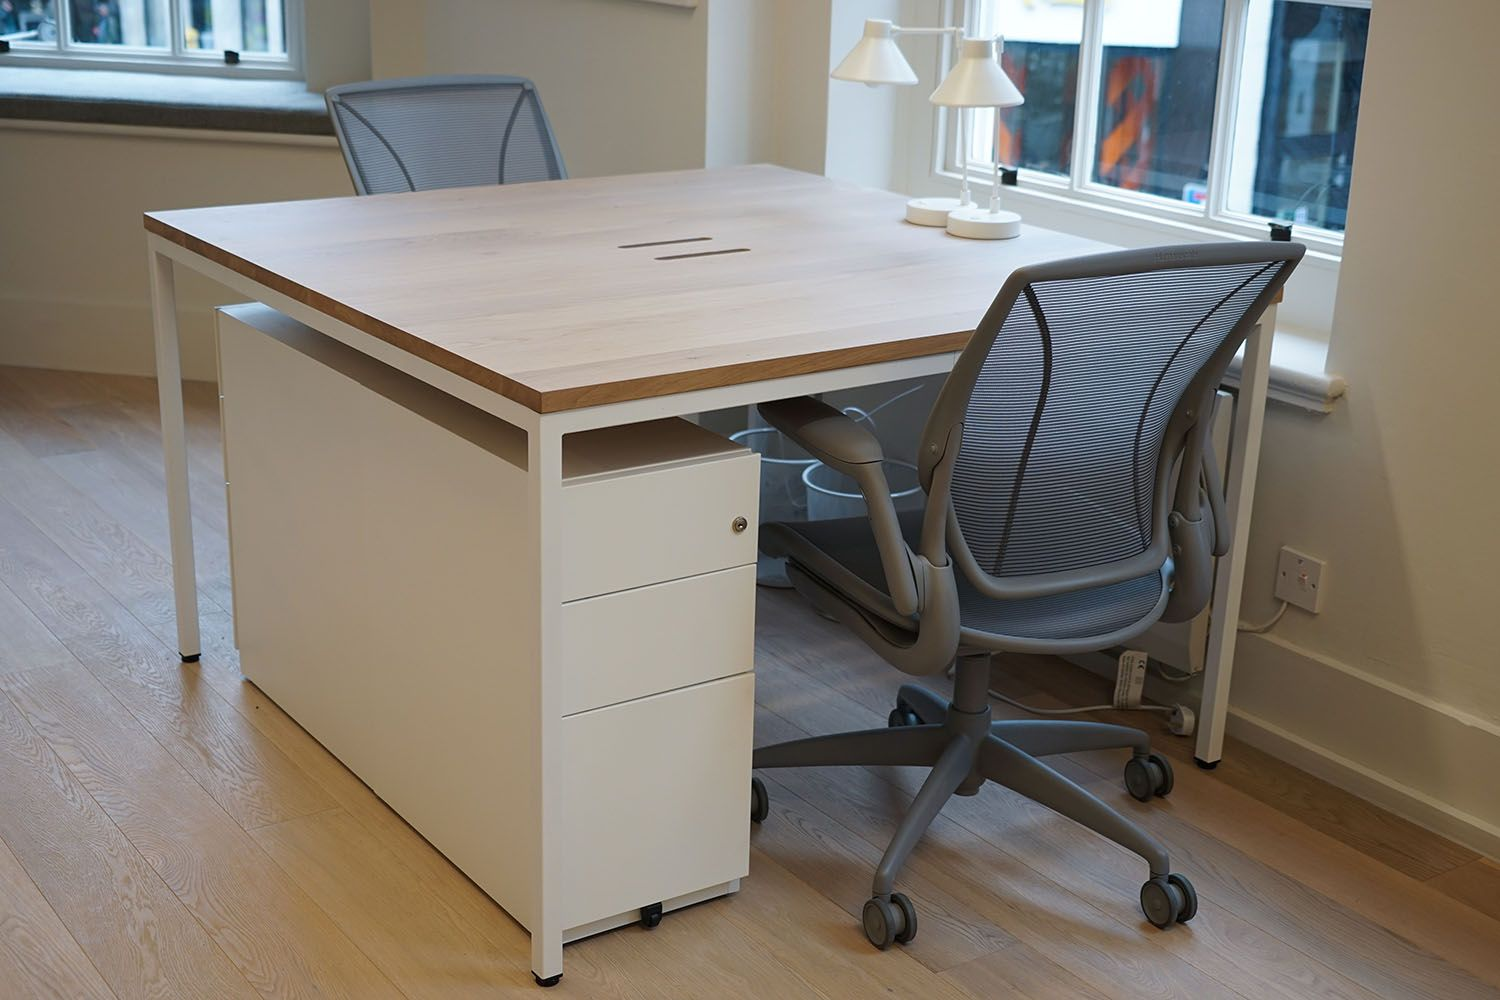 Bespoke office desks Reclaimed Wood Noble Russell Produces Bespoke Office Furniture For London Based Production Company blink Noble Blueline Office Furniture Ukcom Noble Russell Produces Bespoke Office Furniture For London Based